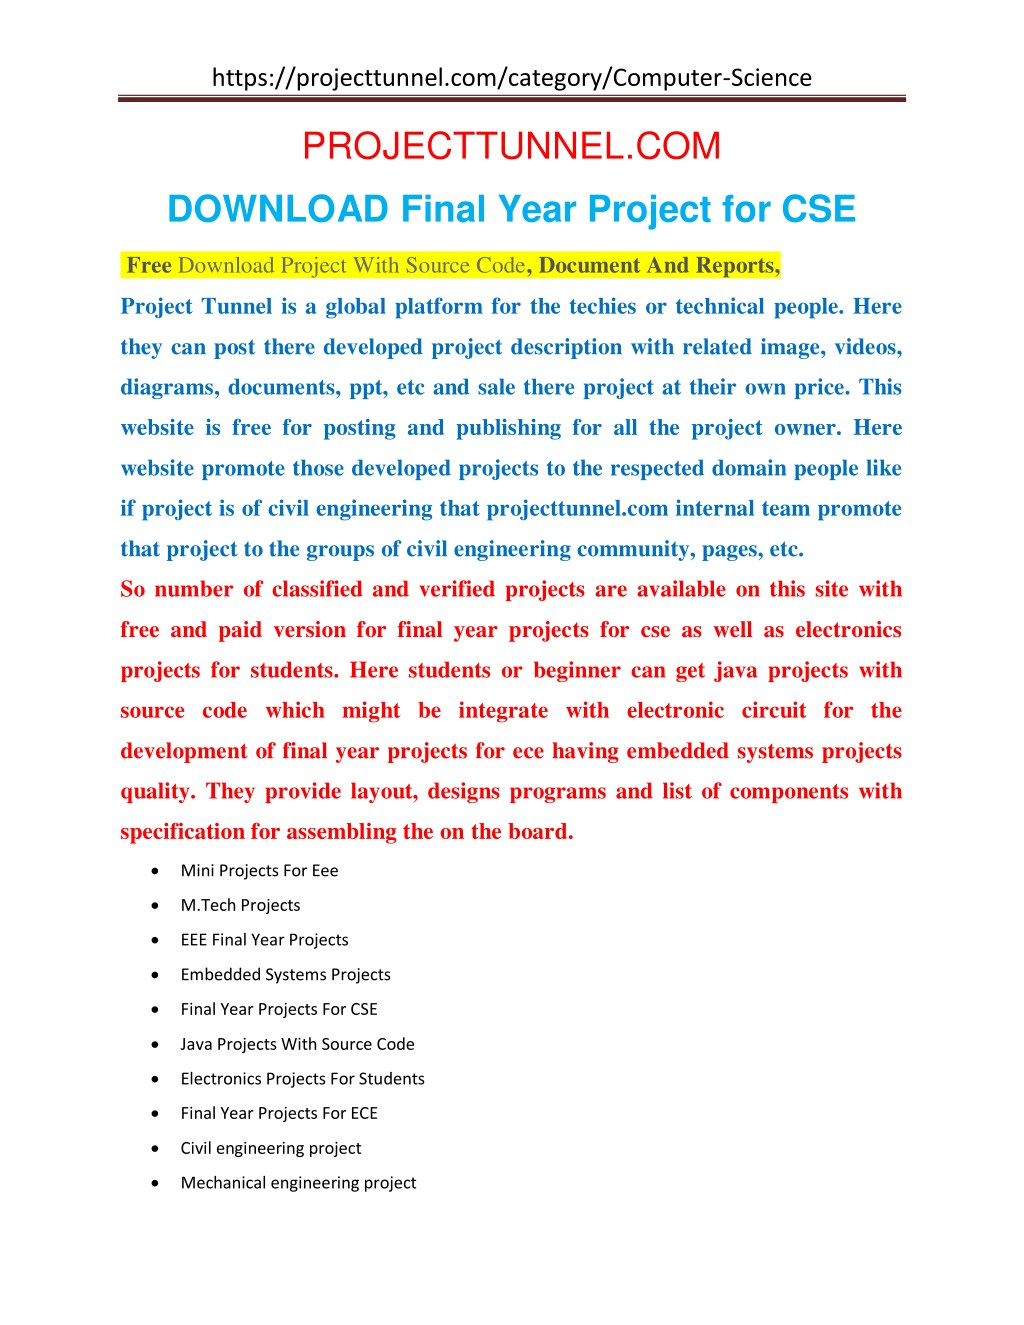 PPT - final year projects for cse PowerPoint Presentation